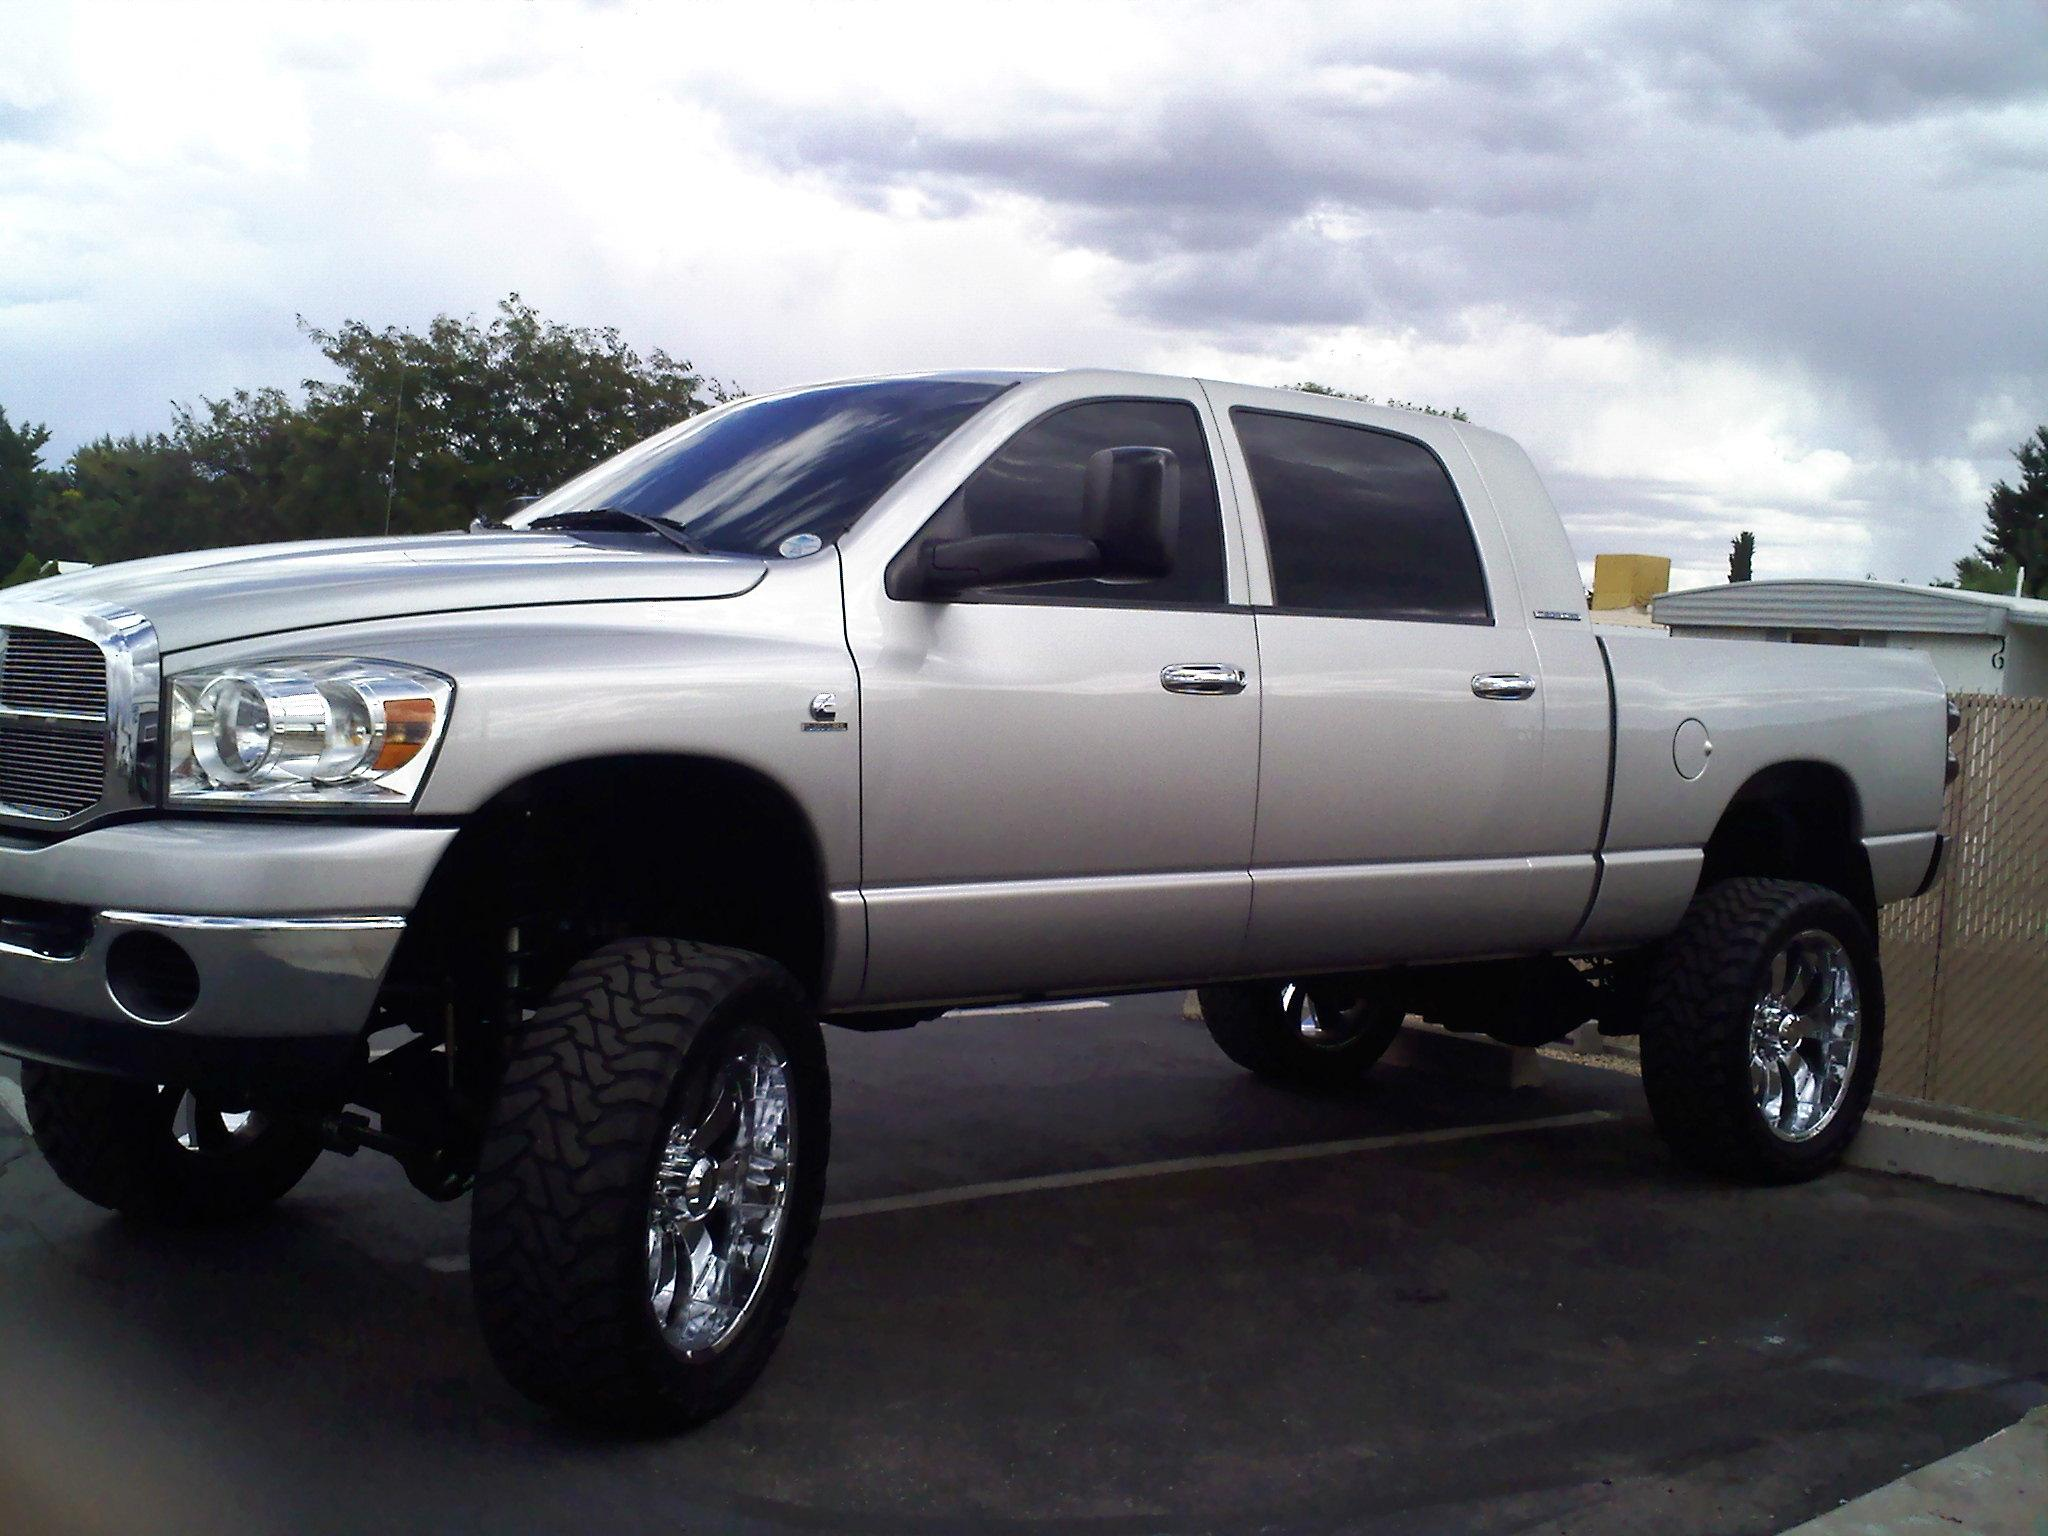 Another Rayzdgm 2007 Dodge Ram 2500 Mega Cab Post Photo 13961560